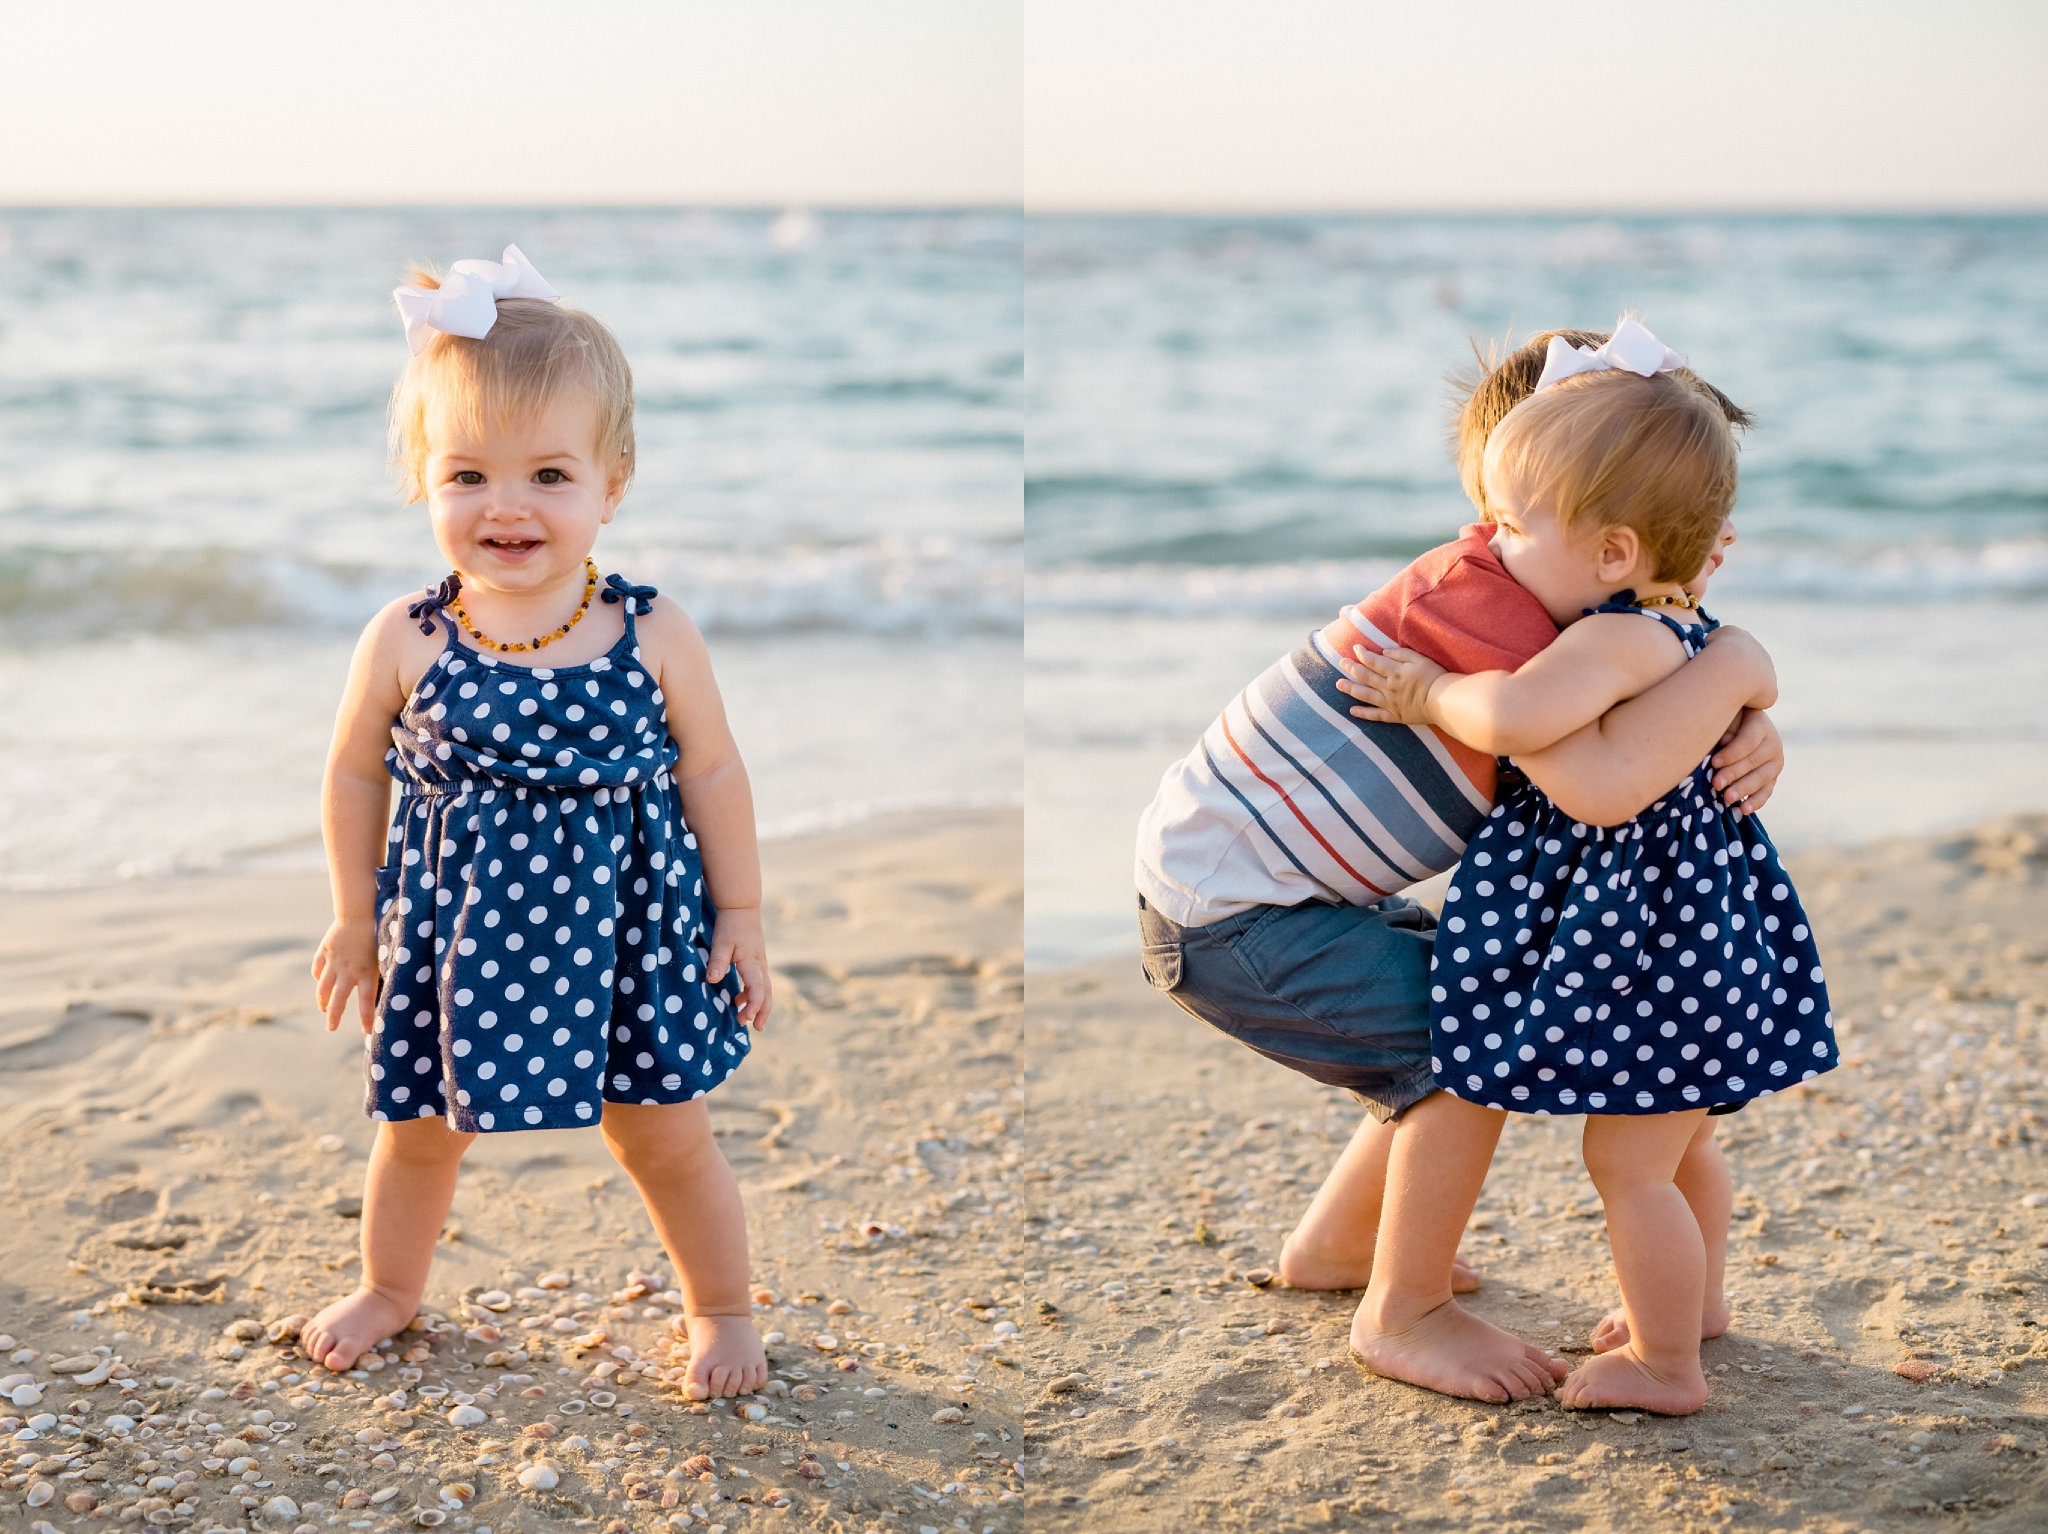 Caesarea-israel-beach-family-session-kate-giryes-photography-21_WEB.jpg